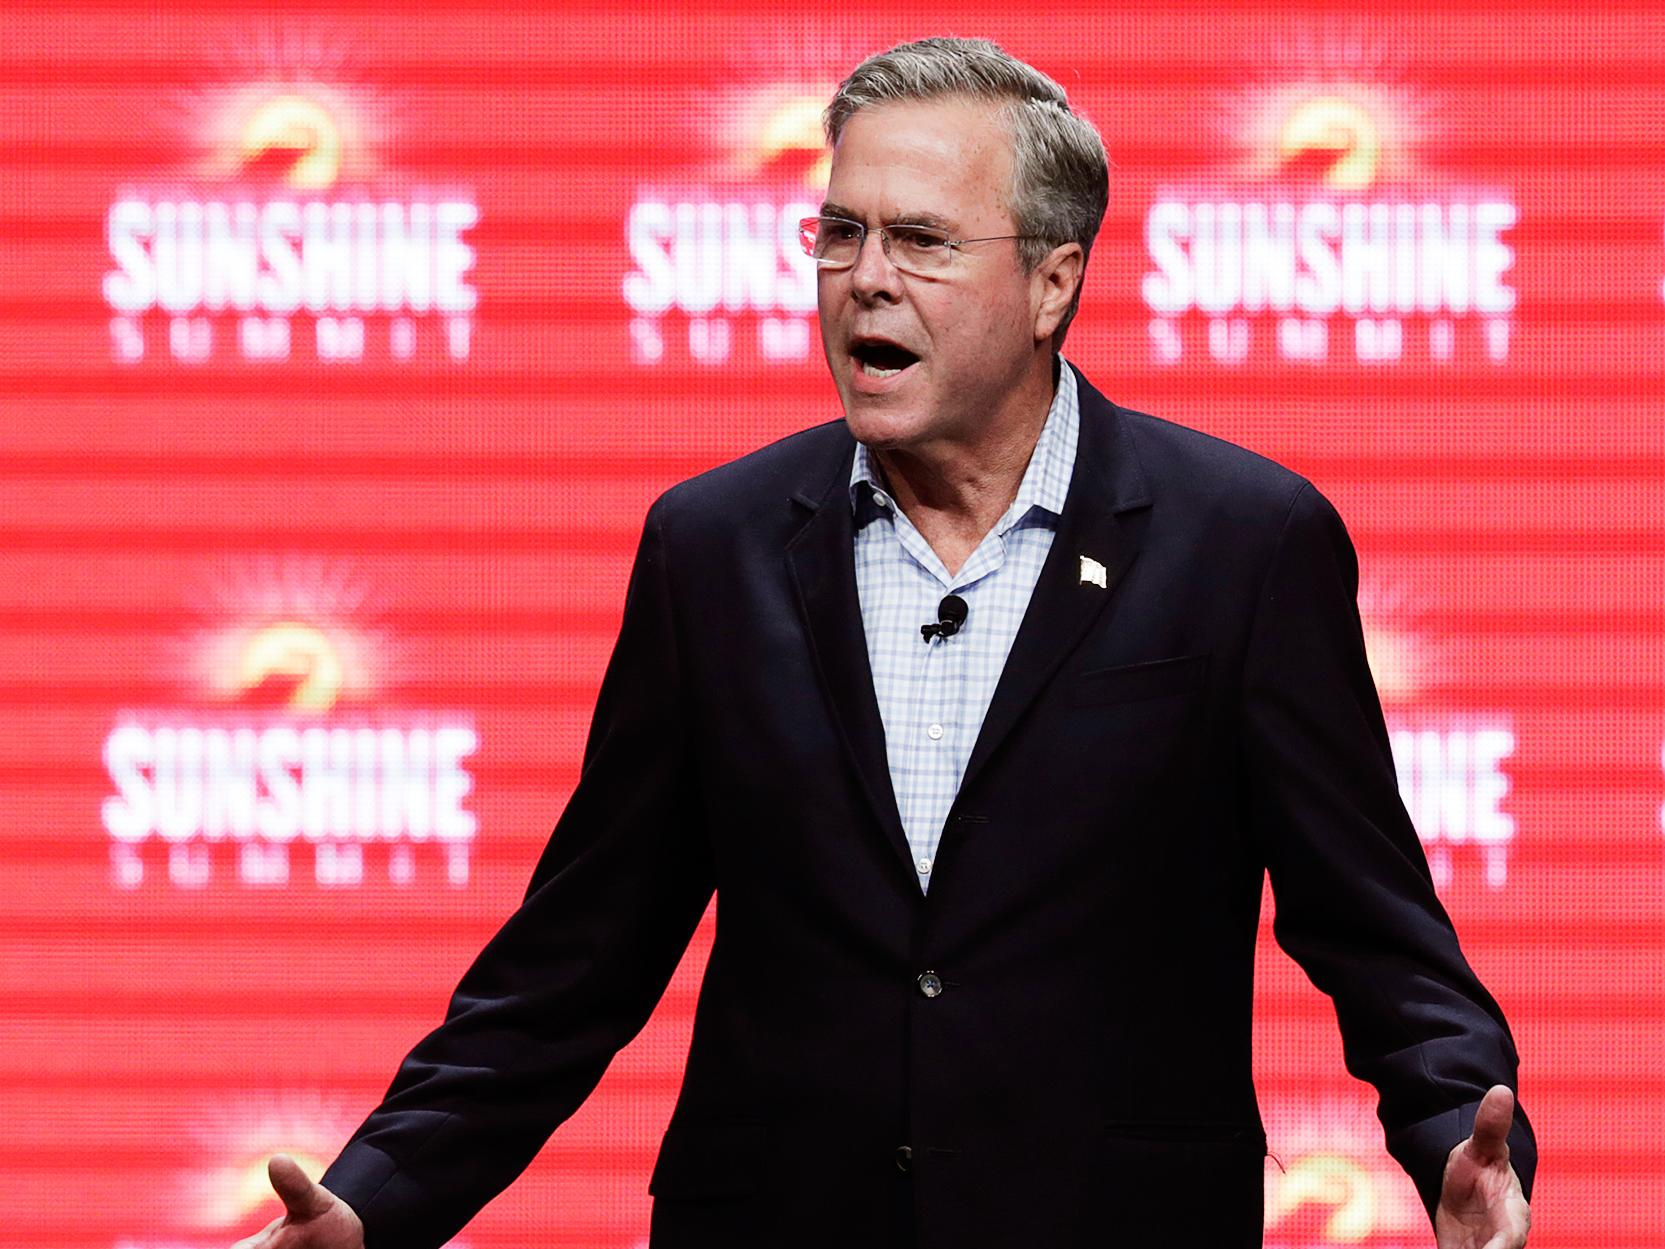 Jeb Bush is spitting fire at Obama for touting climate-change efforts after Paris attacks